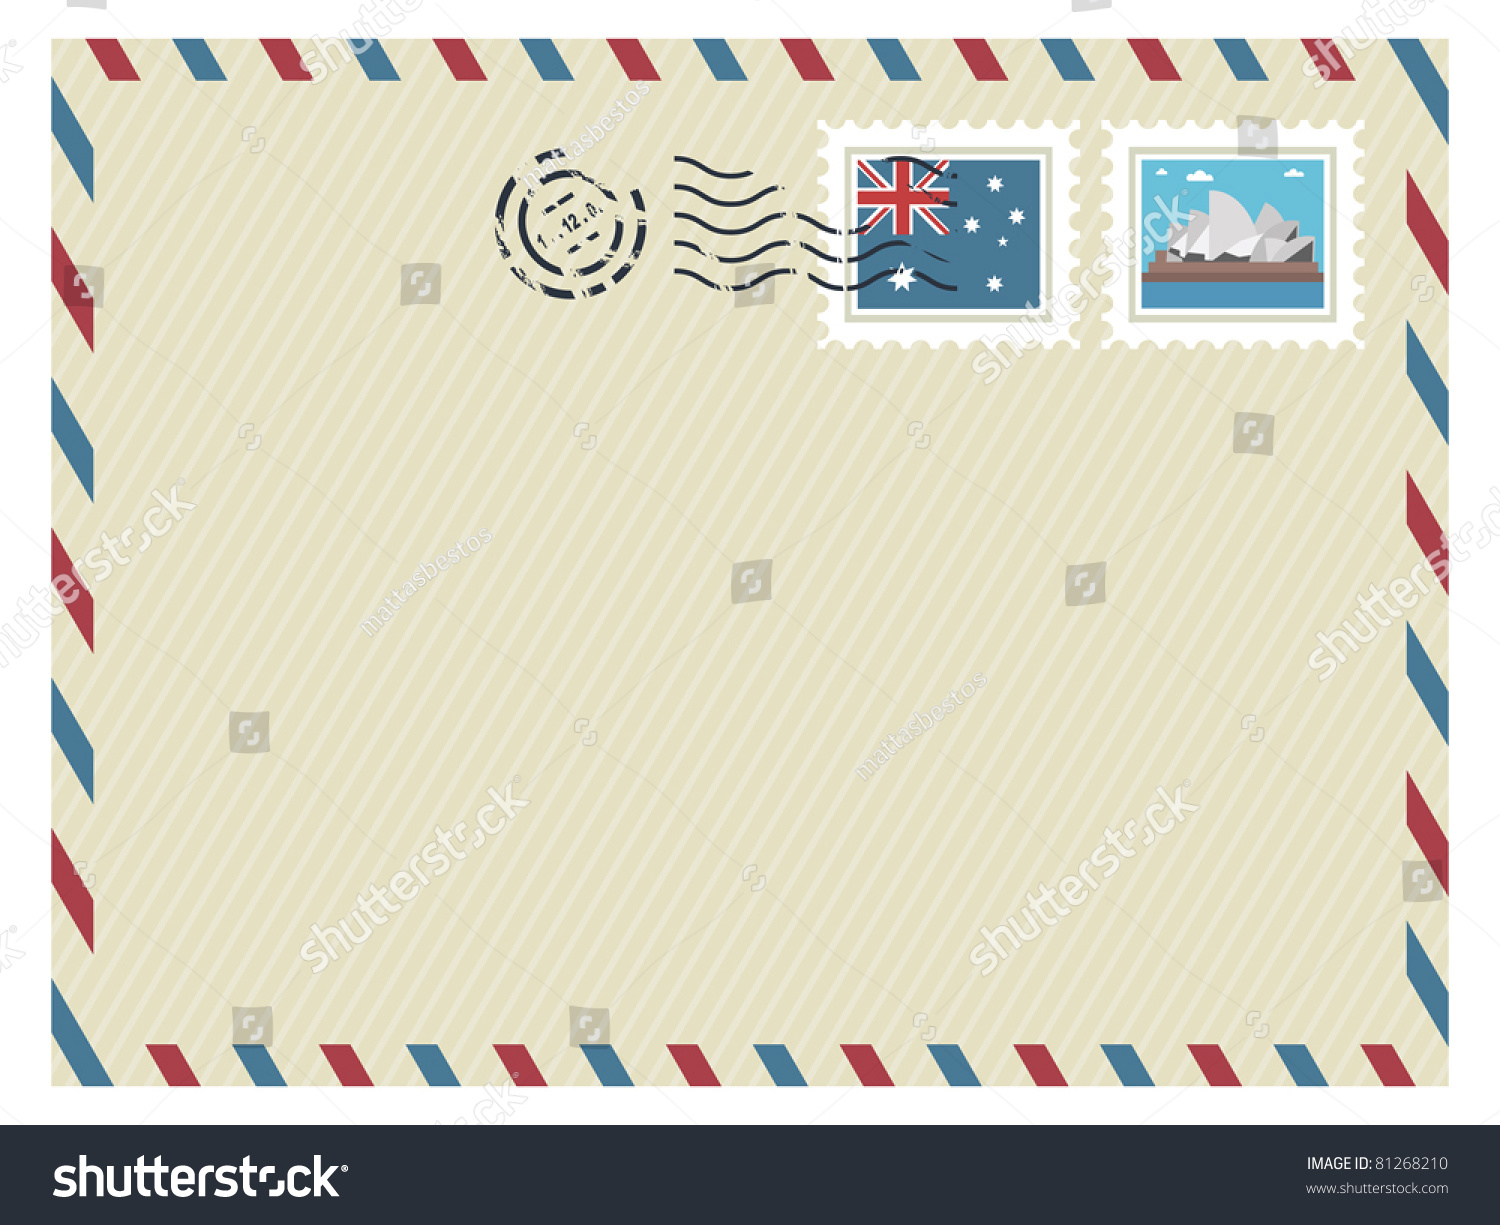 Australia Airmail Envelope With Stamps Ready For Text Stock Vector ...